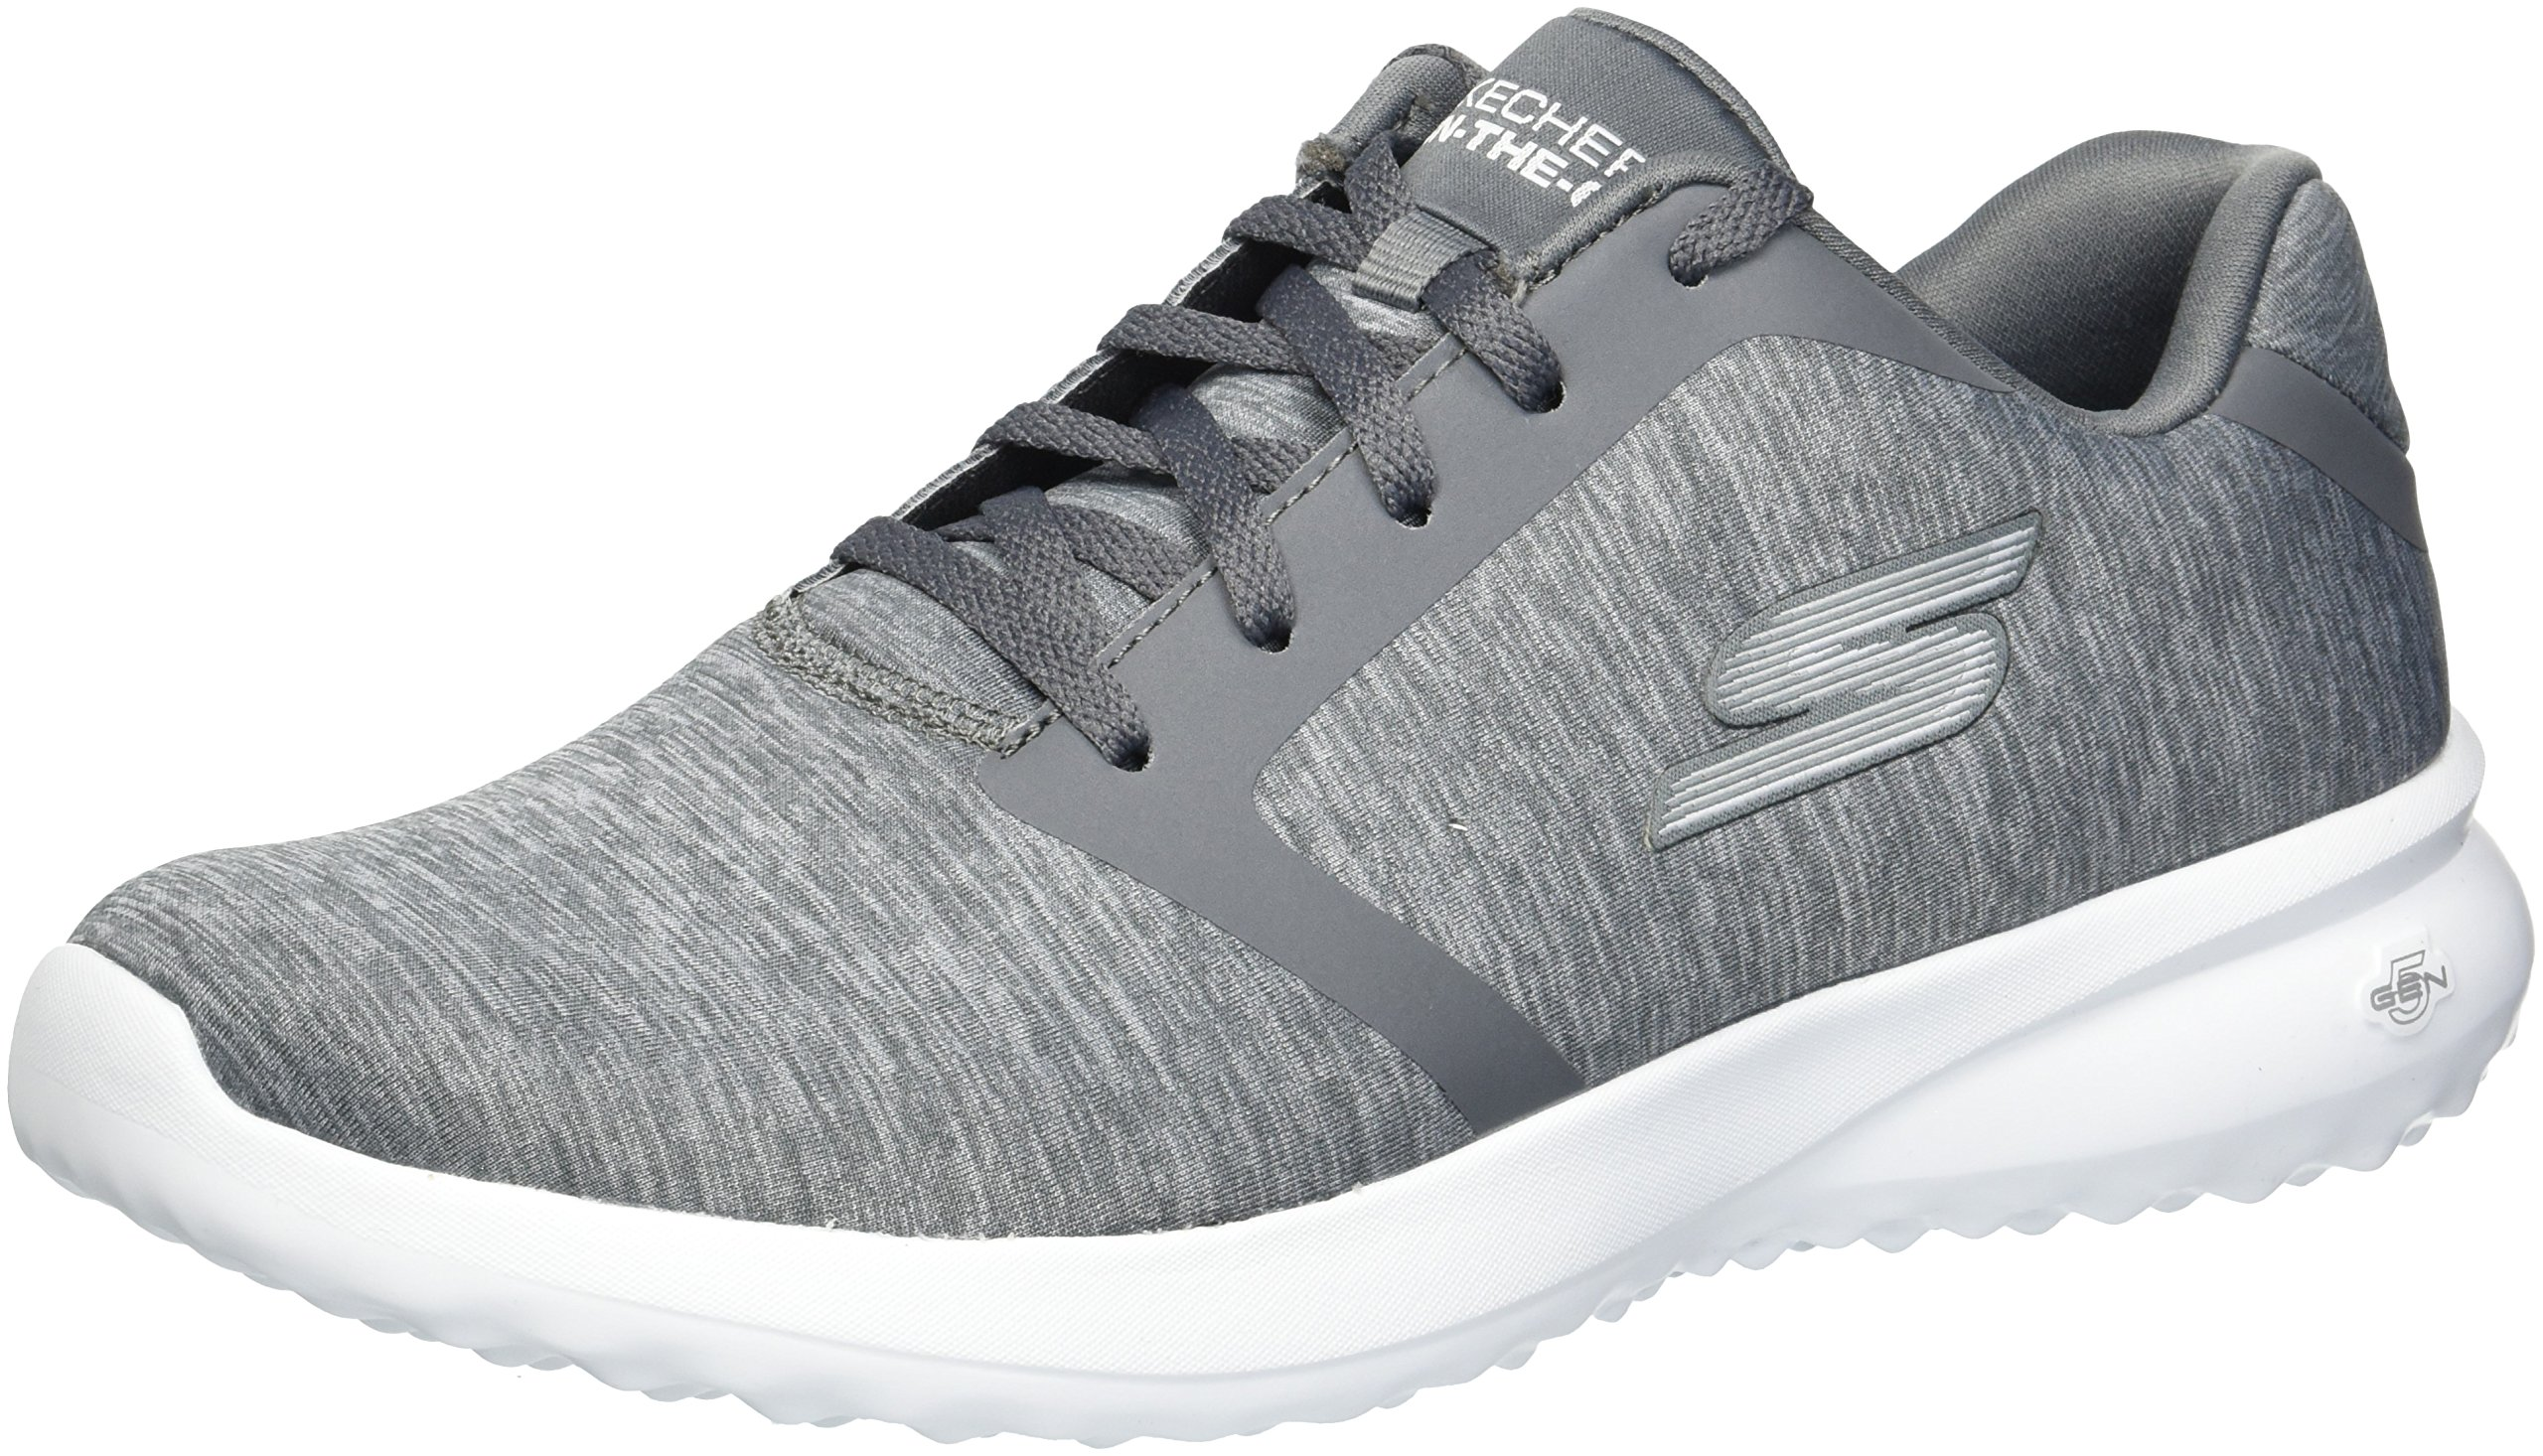 Skechers Performance Women's on-The-GO City 3.0-Immerse Sneaker,Charcoal,8 M US